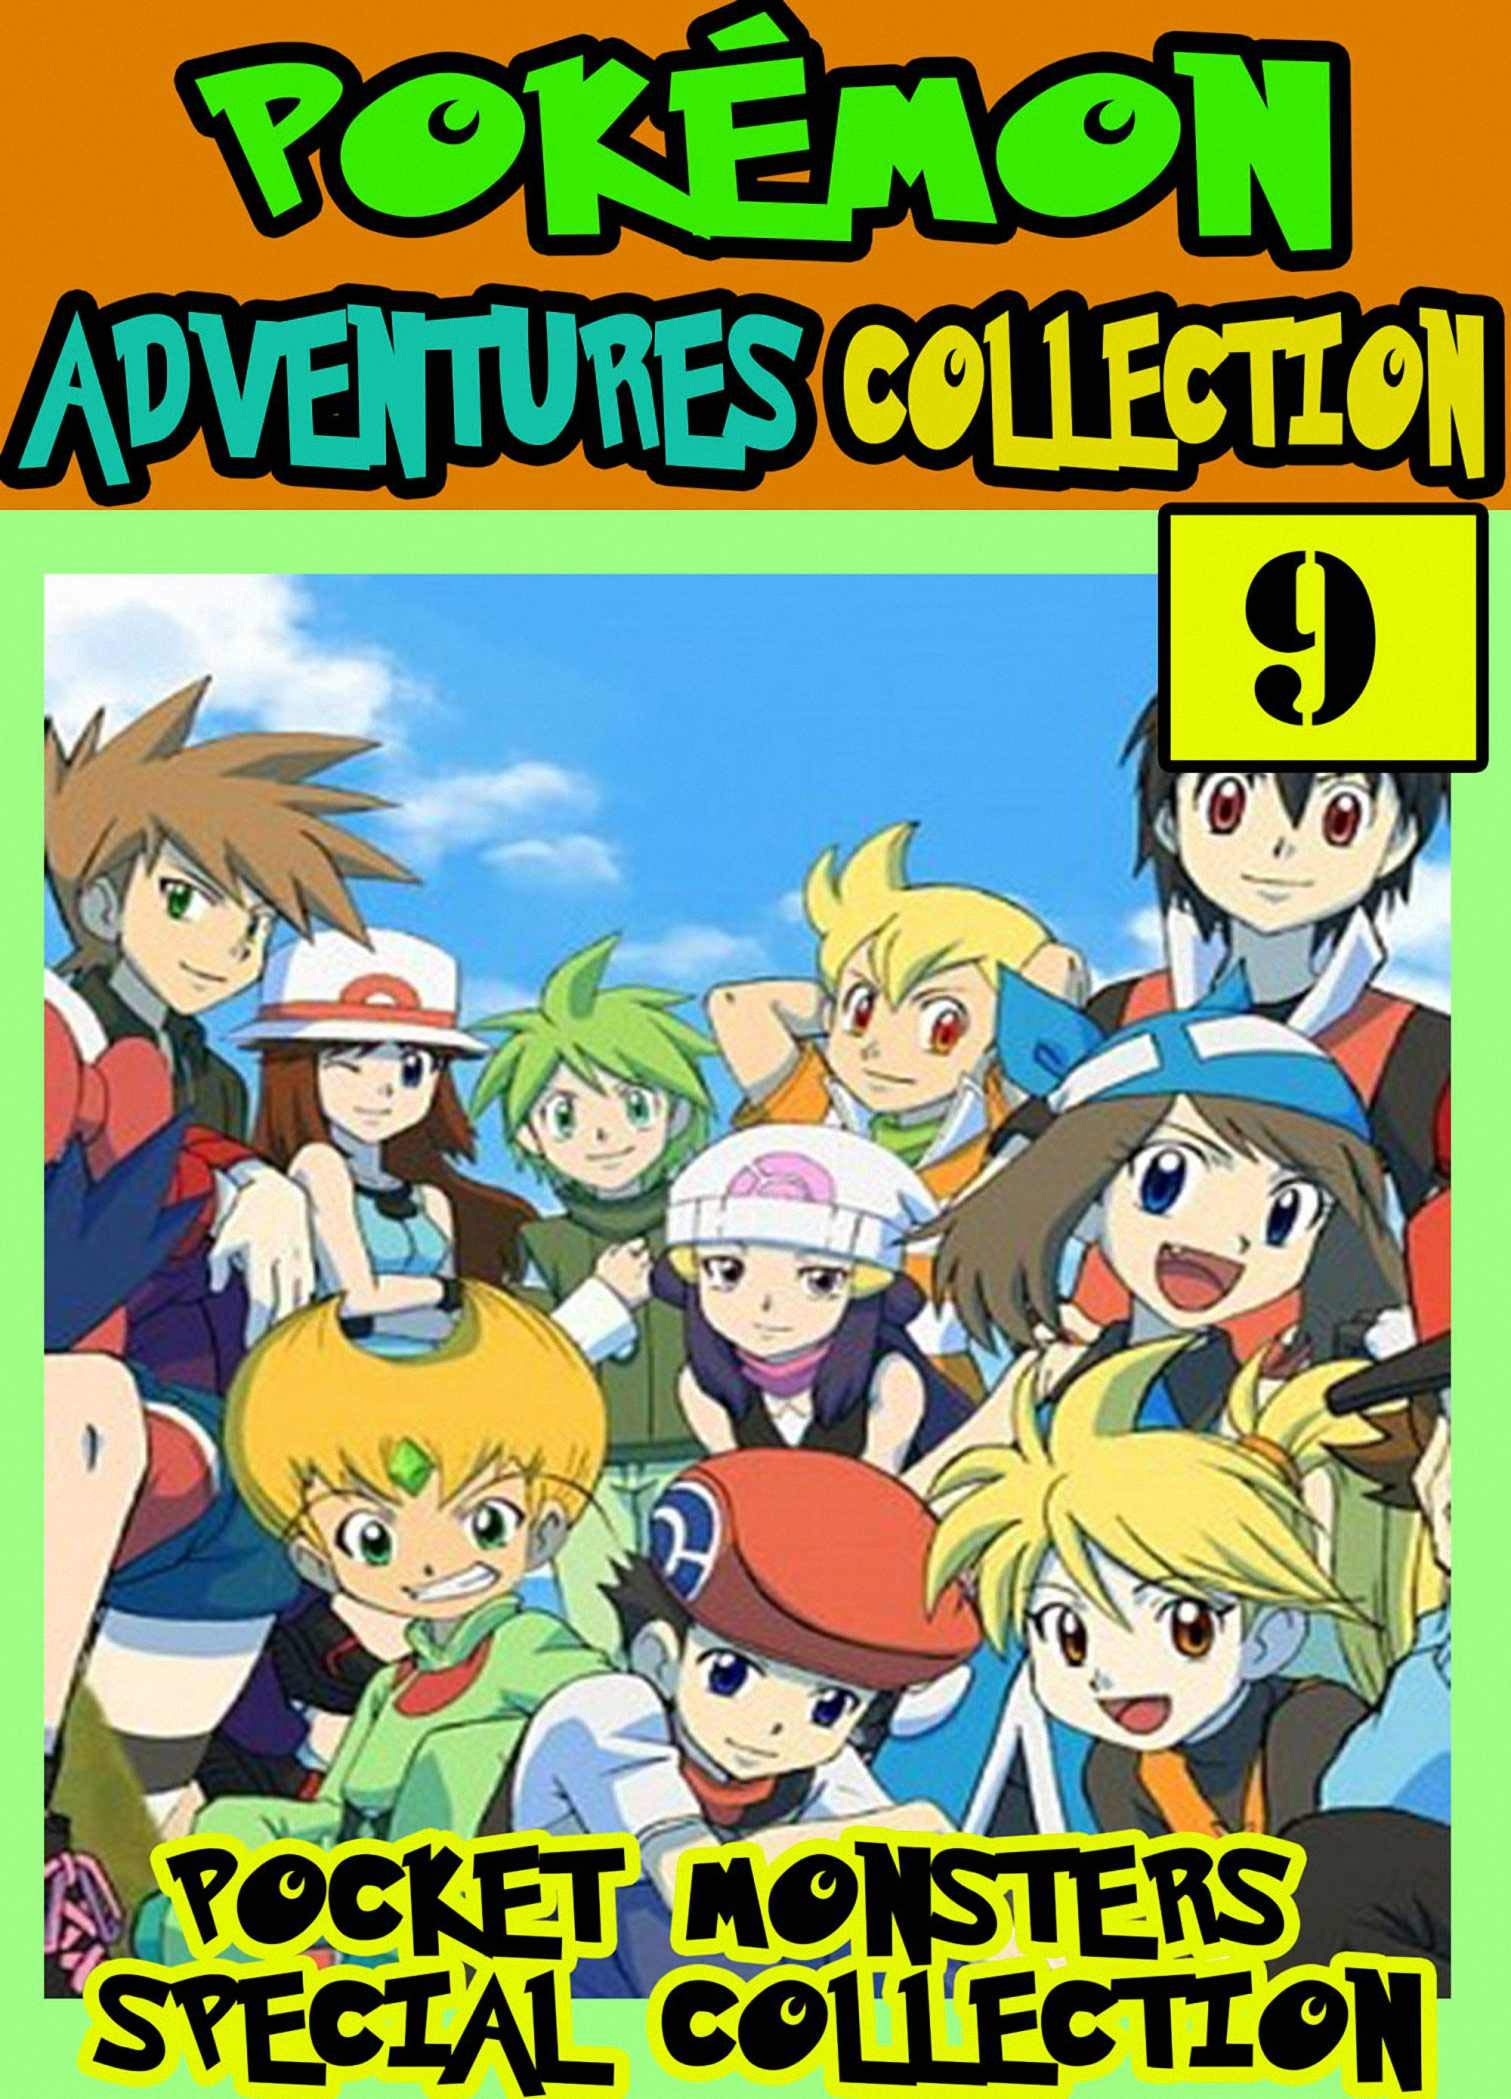 Pocket Special: Collection Book 9 - Manga Pokemon Special Adventures Graphic Novel For Kids